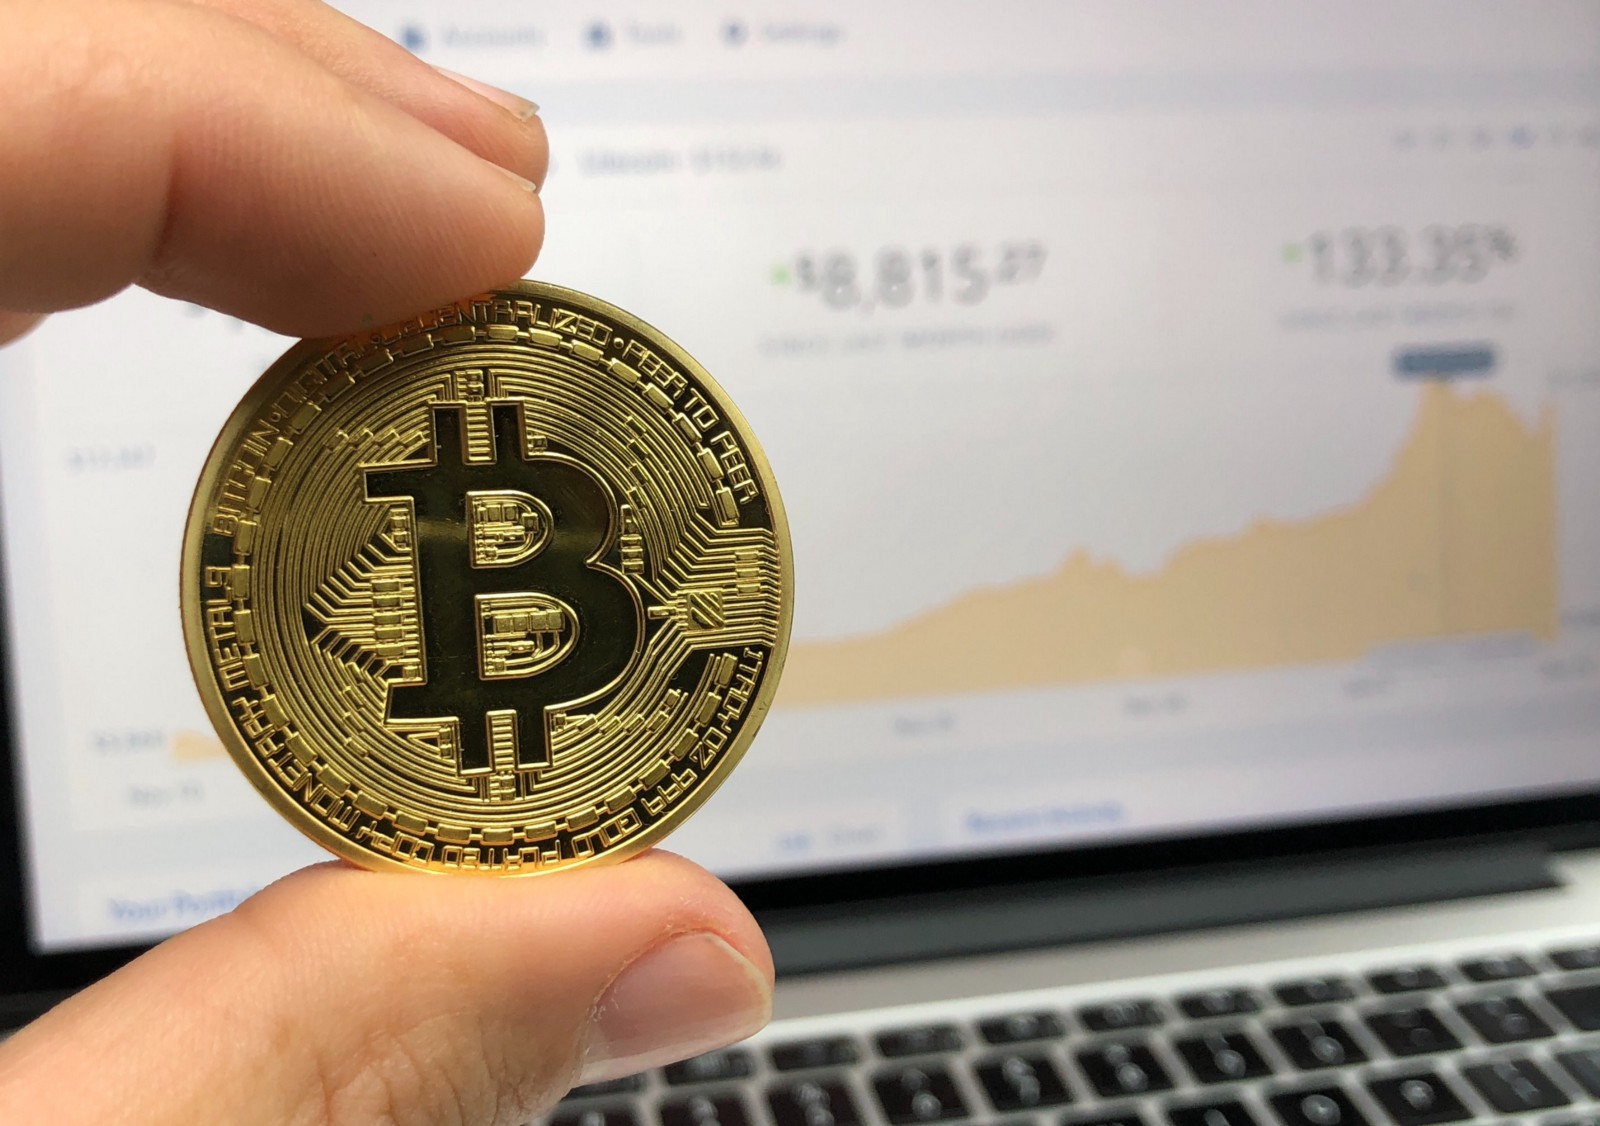 /how-cryptocurrency-tax-regulation-promotes-economic-growth-14ab4192fb9f feature image